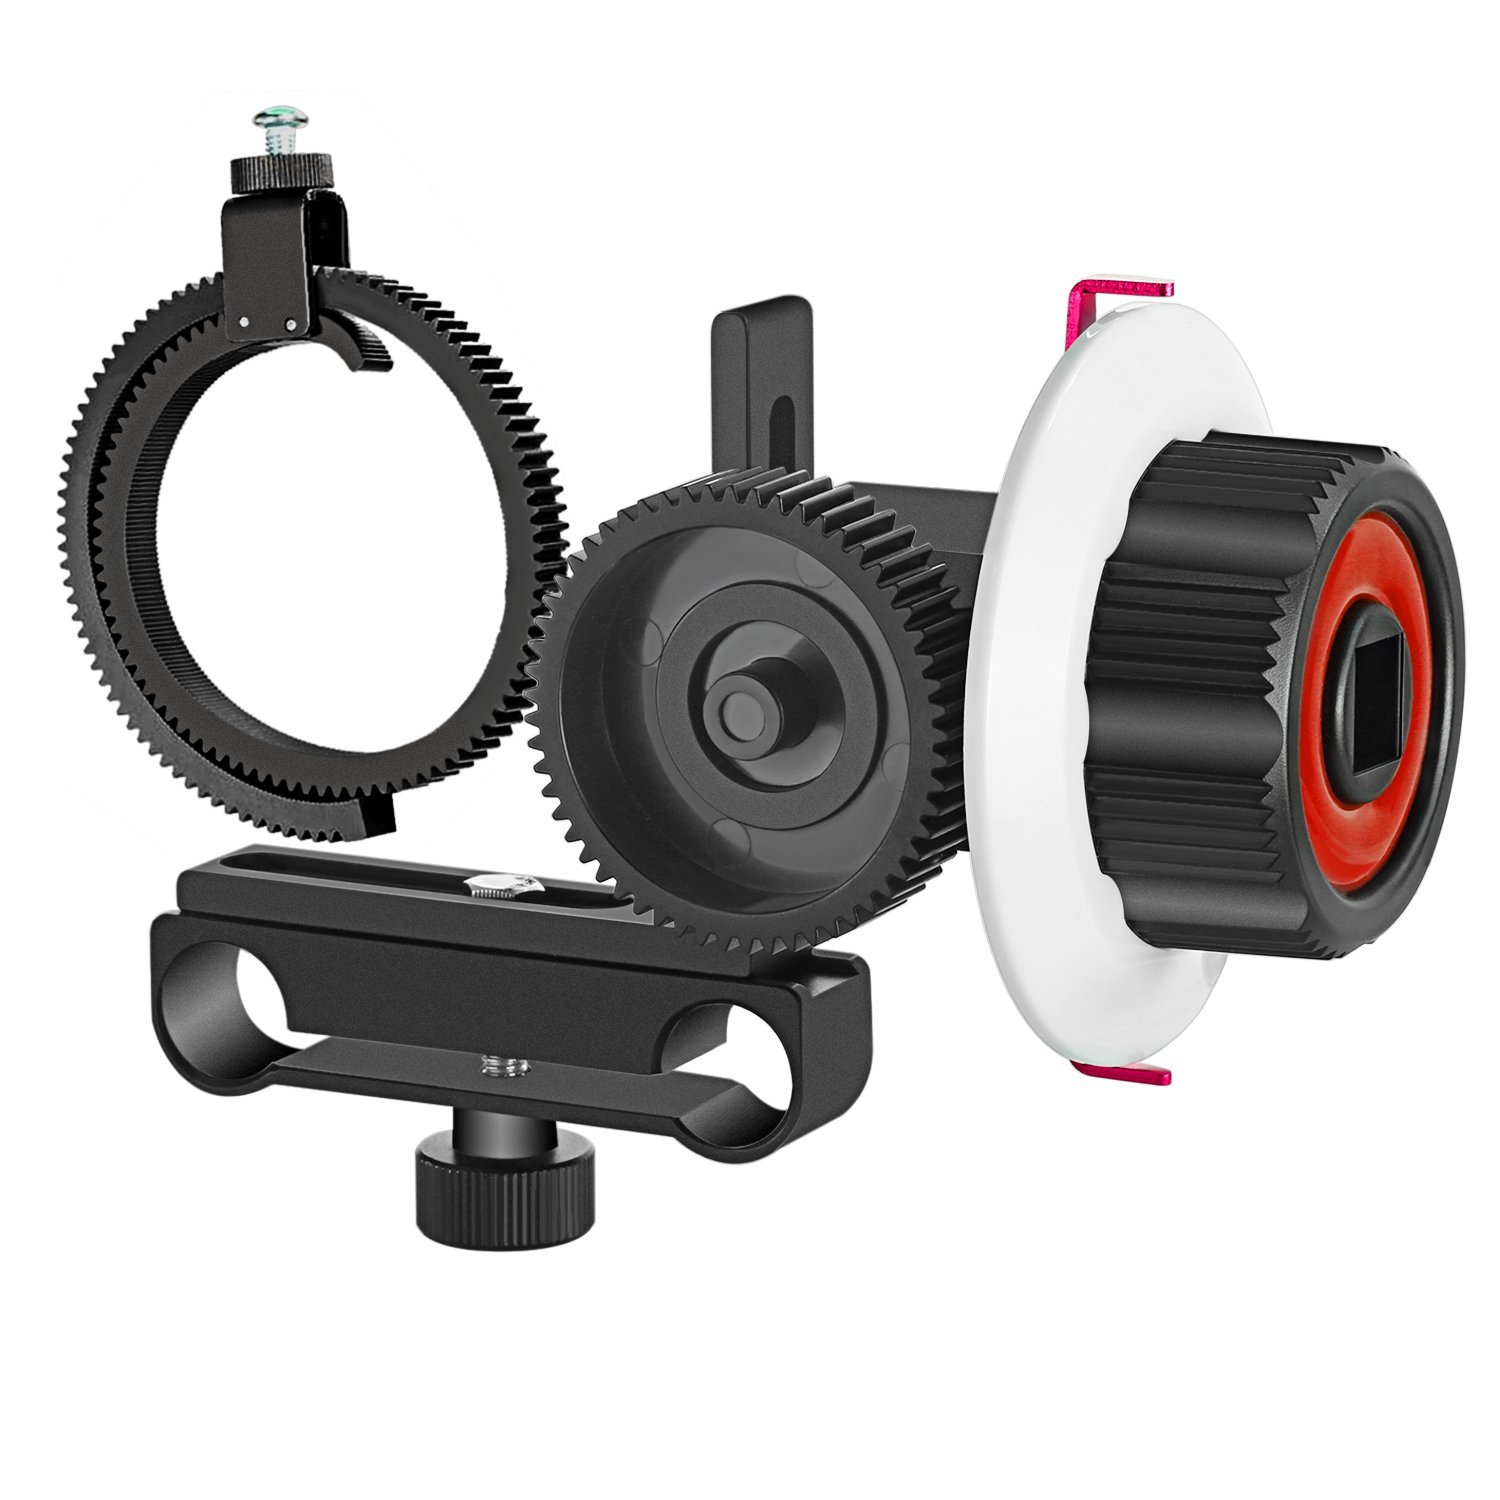 Neewer Follow Focus with Gear Ring Belt for Canon Nikon Sony and Other DSLR Camera Camcorder DV Video Fits 15mm Rod Film Making System,Shoulder Support,Stabilizer,Movie Rig(Red+Black) by Neewer